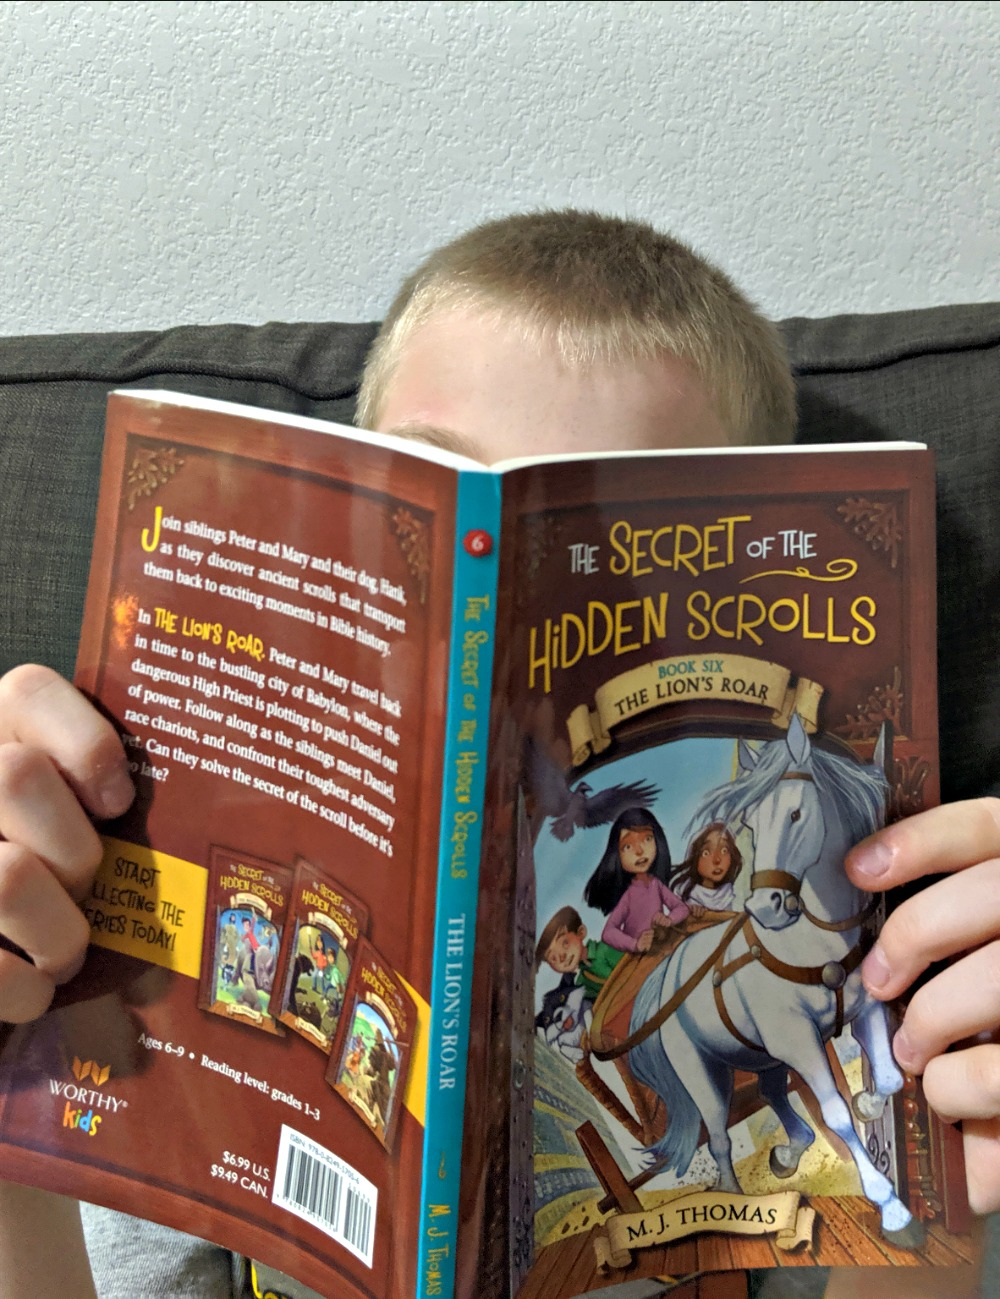 Secret of the Hidden Scrolls Book 6 by MJ Thomas